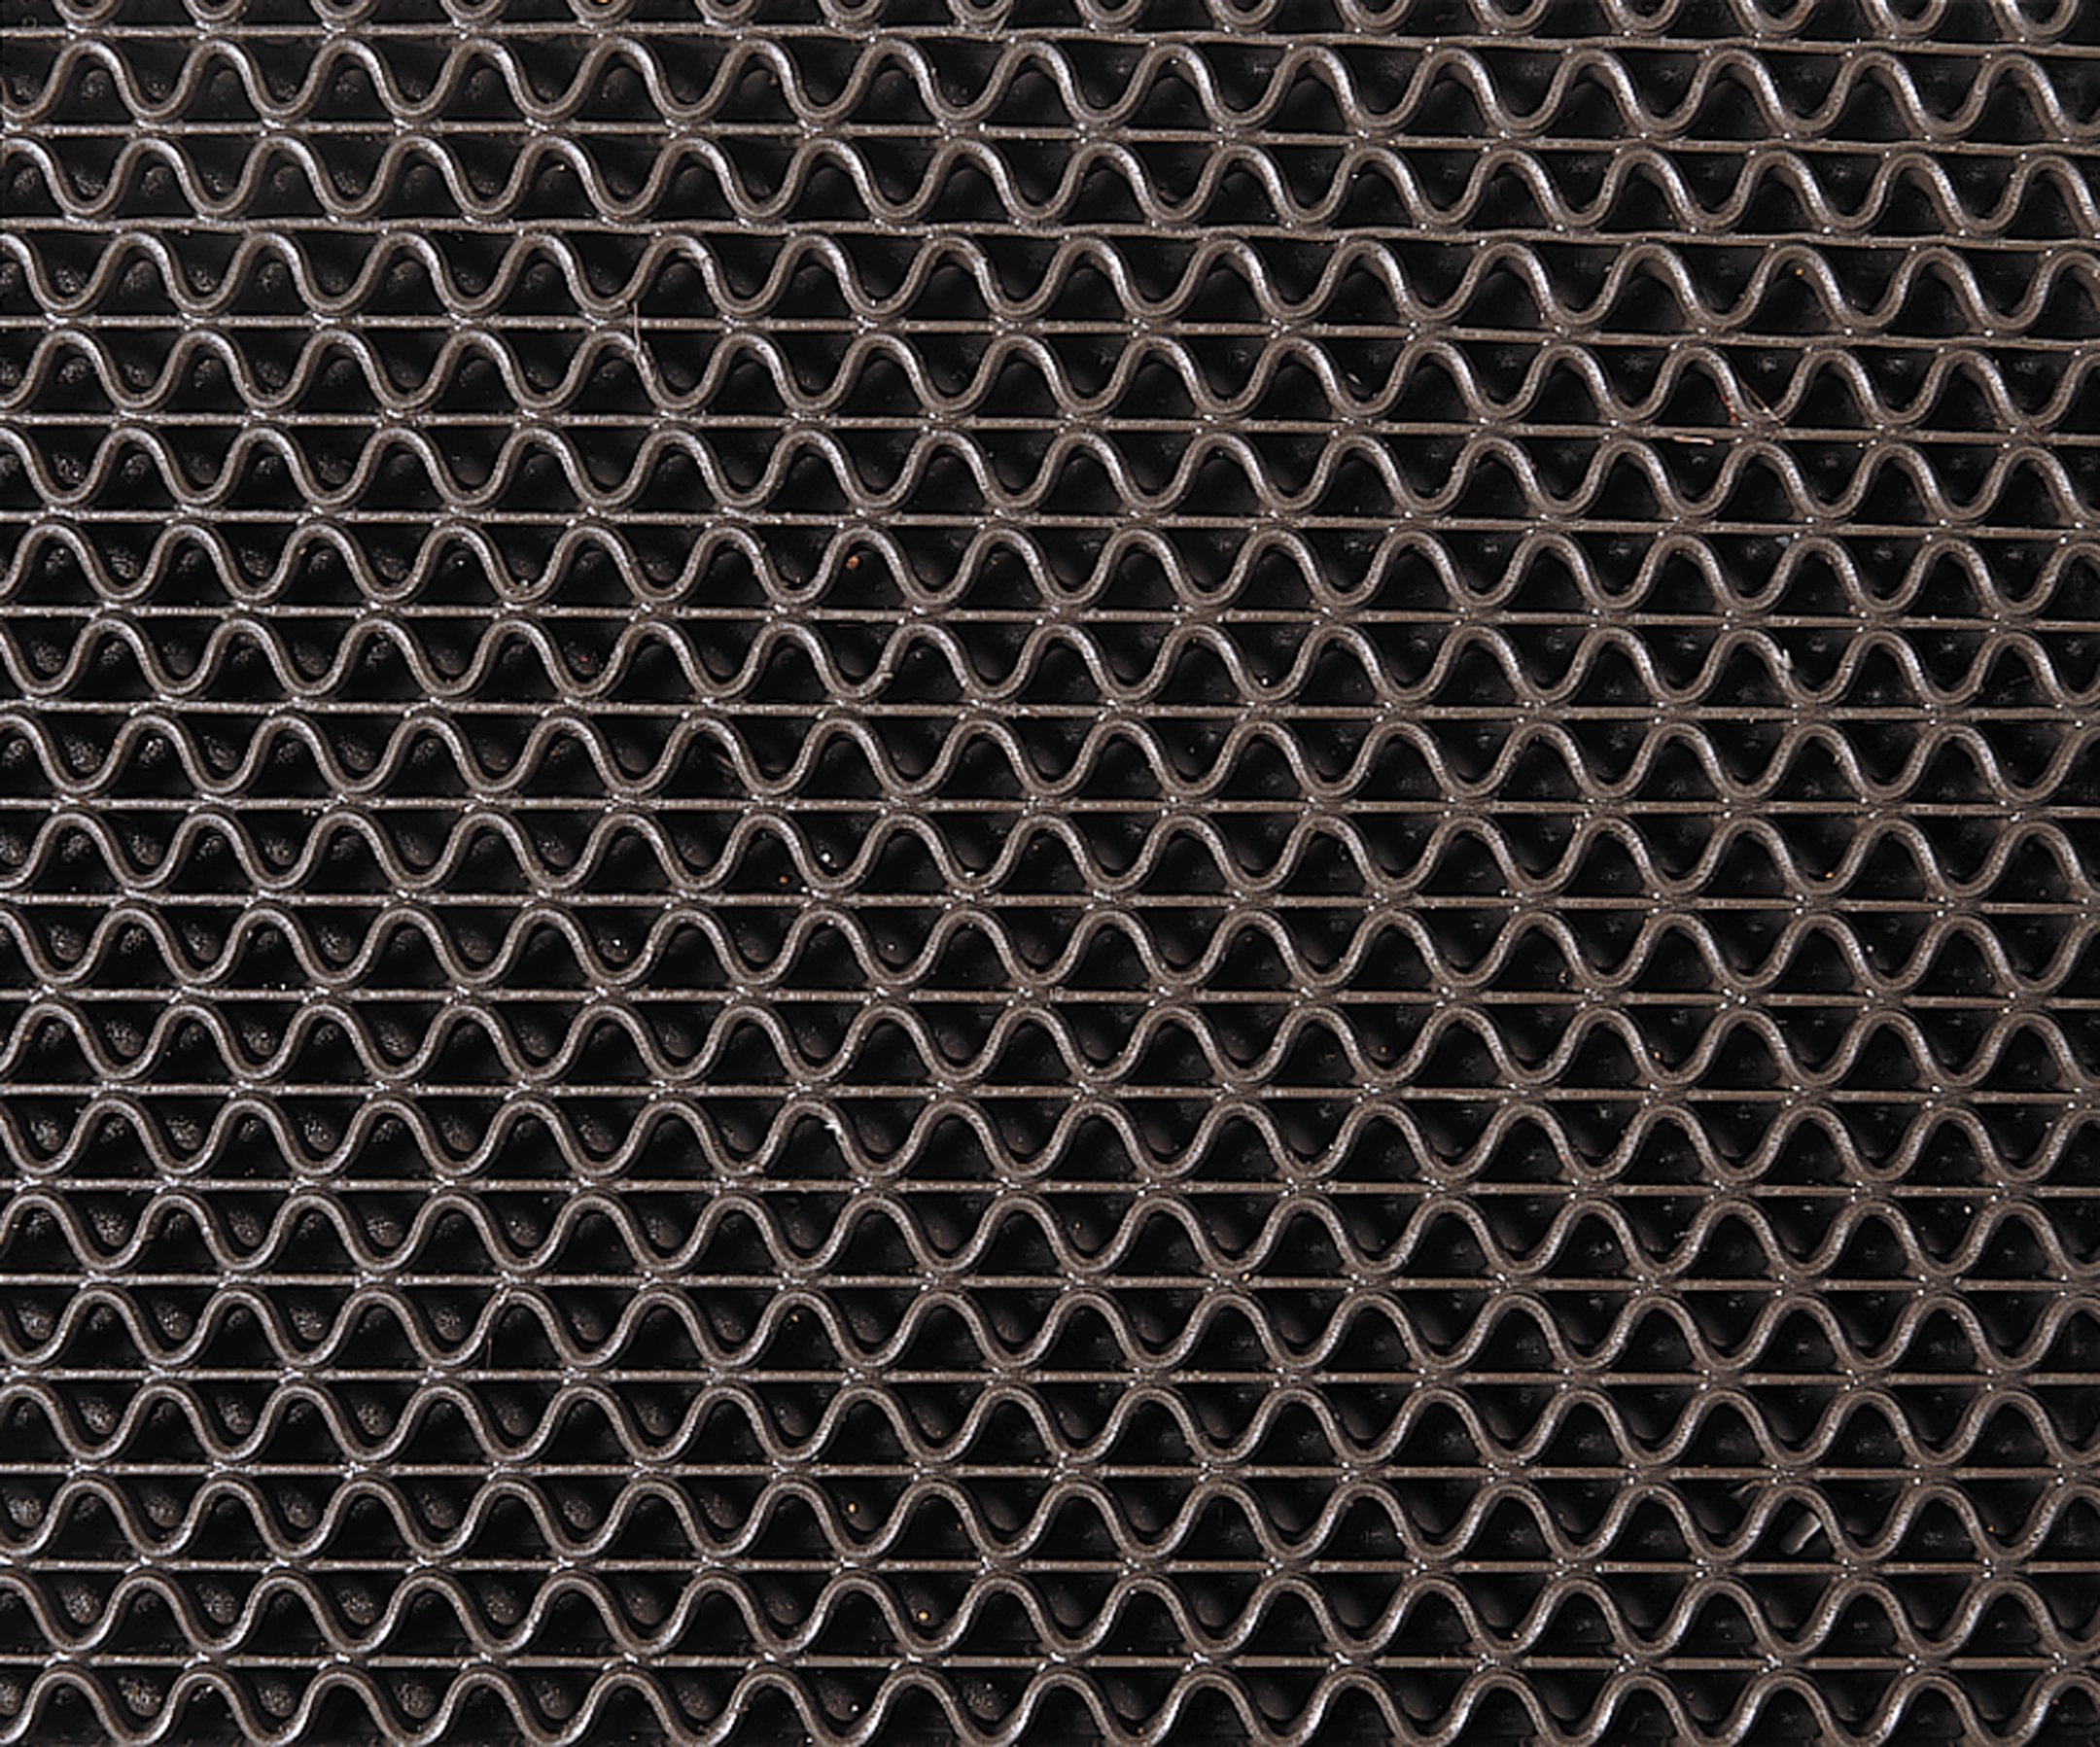 3M Nomad Z-Web Medium Traffic Scraper Matting 6250, Brown, 4' x 6' by 3M